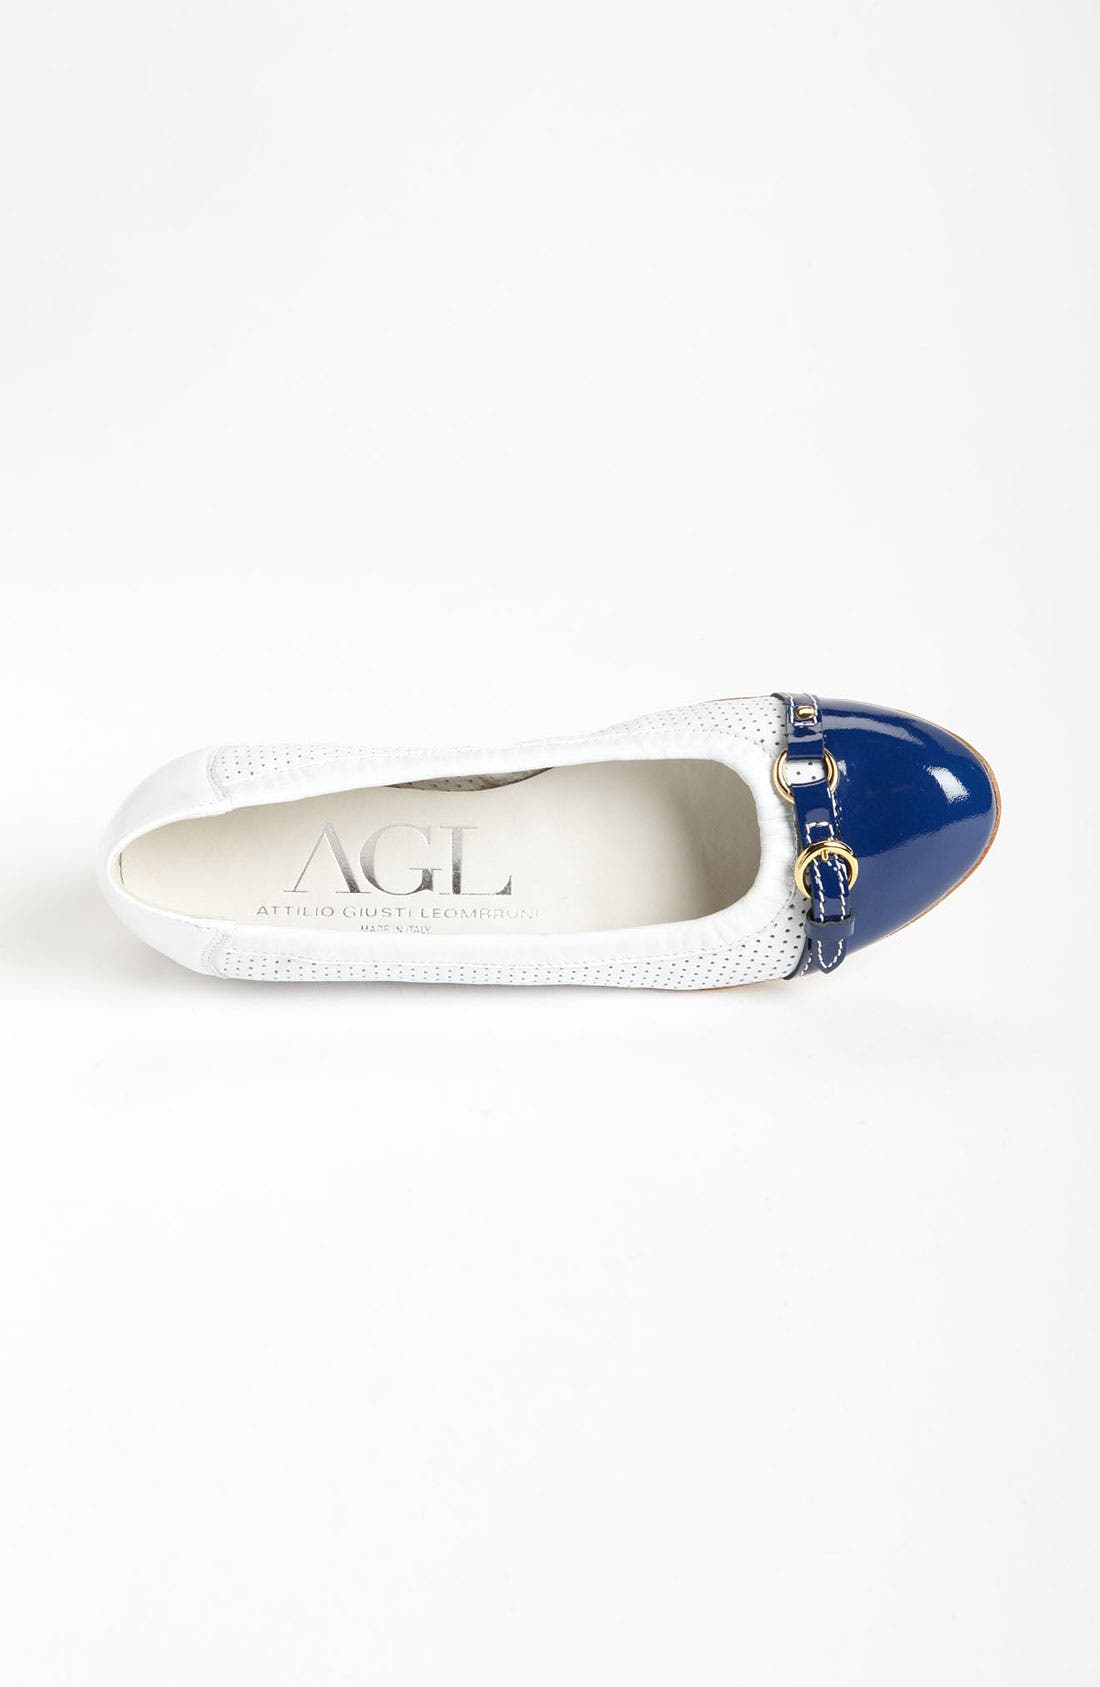 Alternate Image 3  - Attilio Giusti Leombruni Perforated Toe Cap Ballet Flat